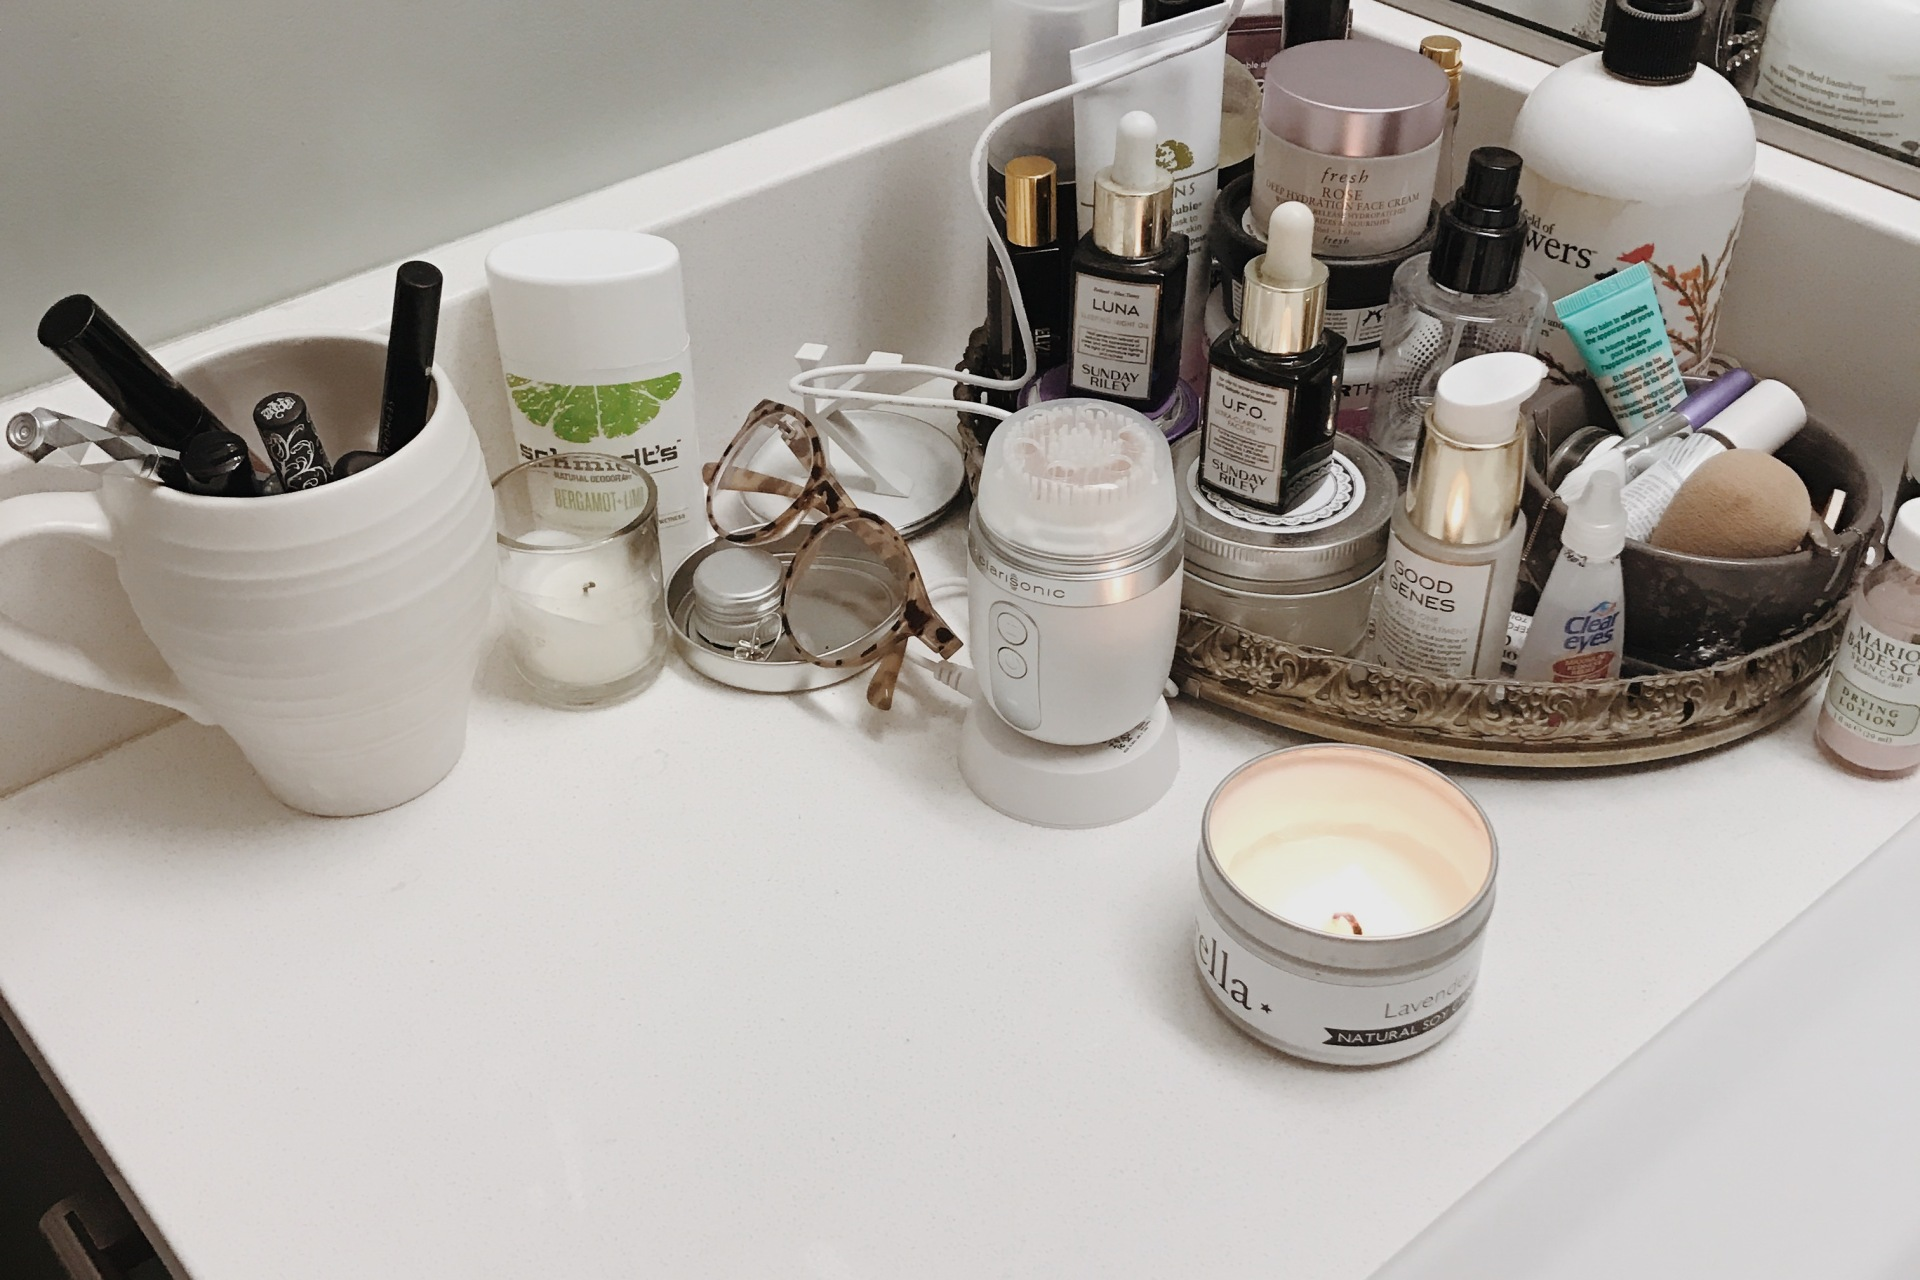 I've Dealt With Acne For Over A Decade And These Are The Products I Use To Keep My Skin Under Control